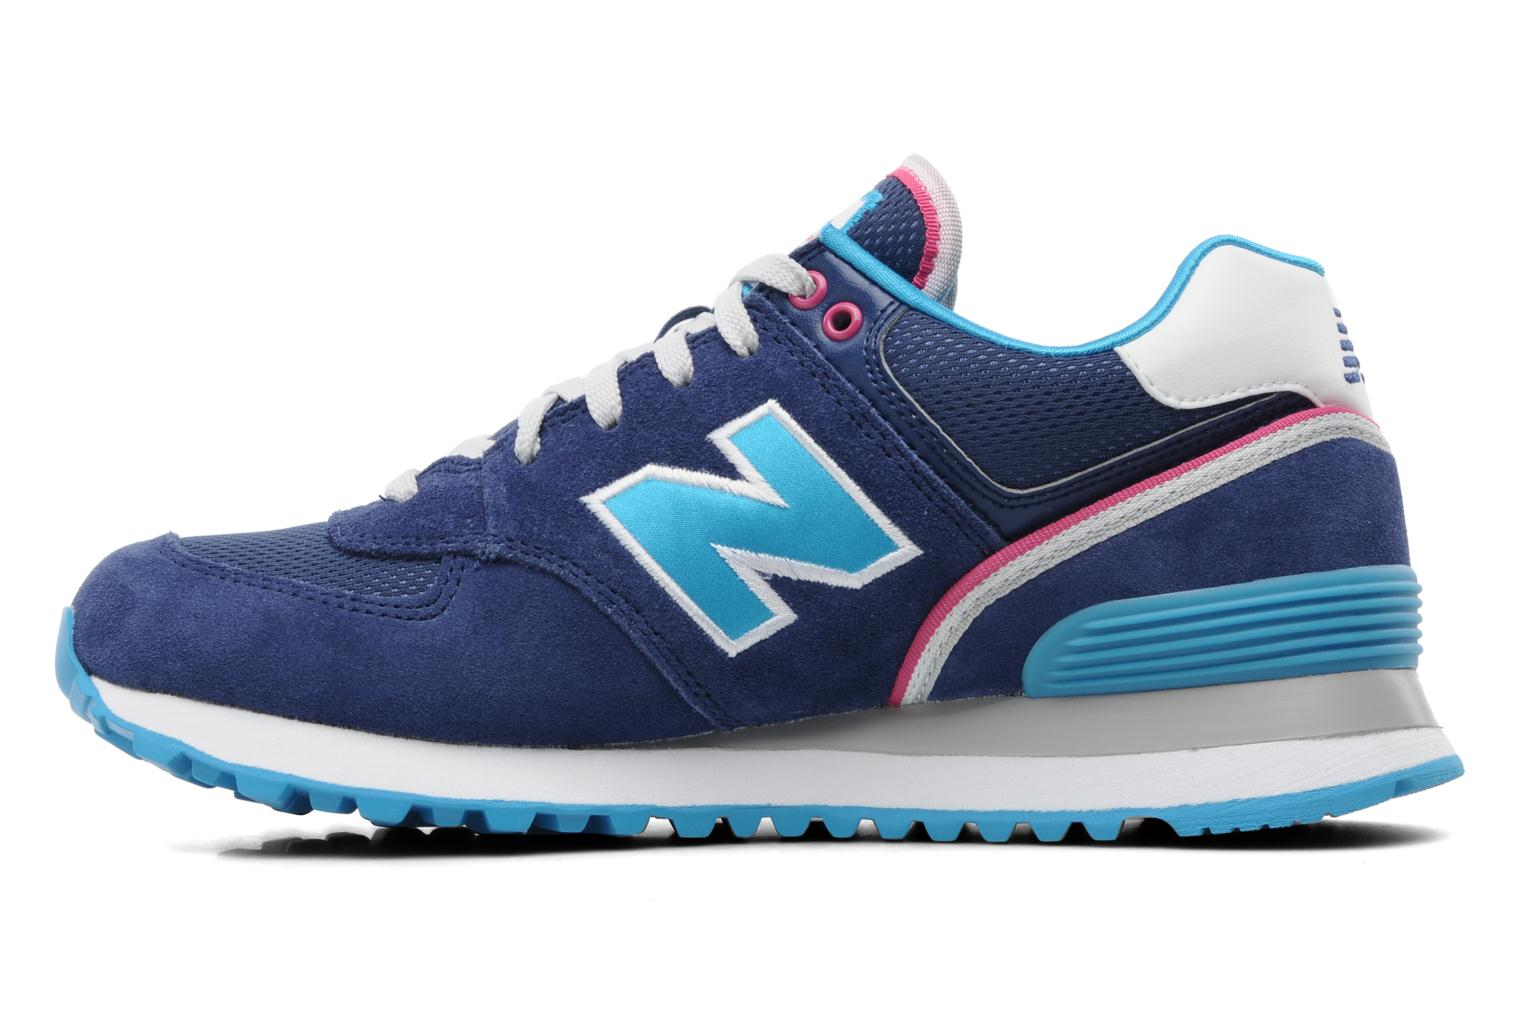 new balance wl574 trainers in blue at 188265. Black Bedroom Furniture Sets. Home Design Ideas